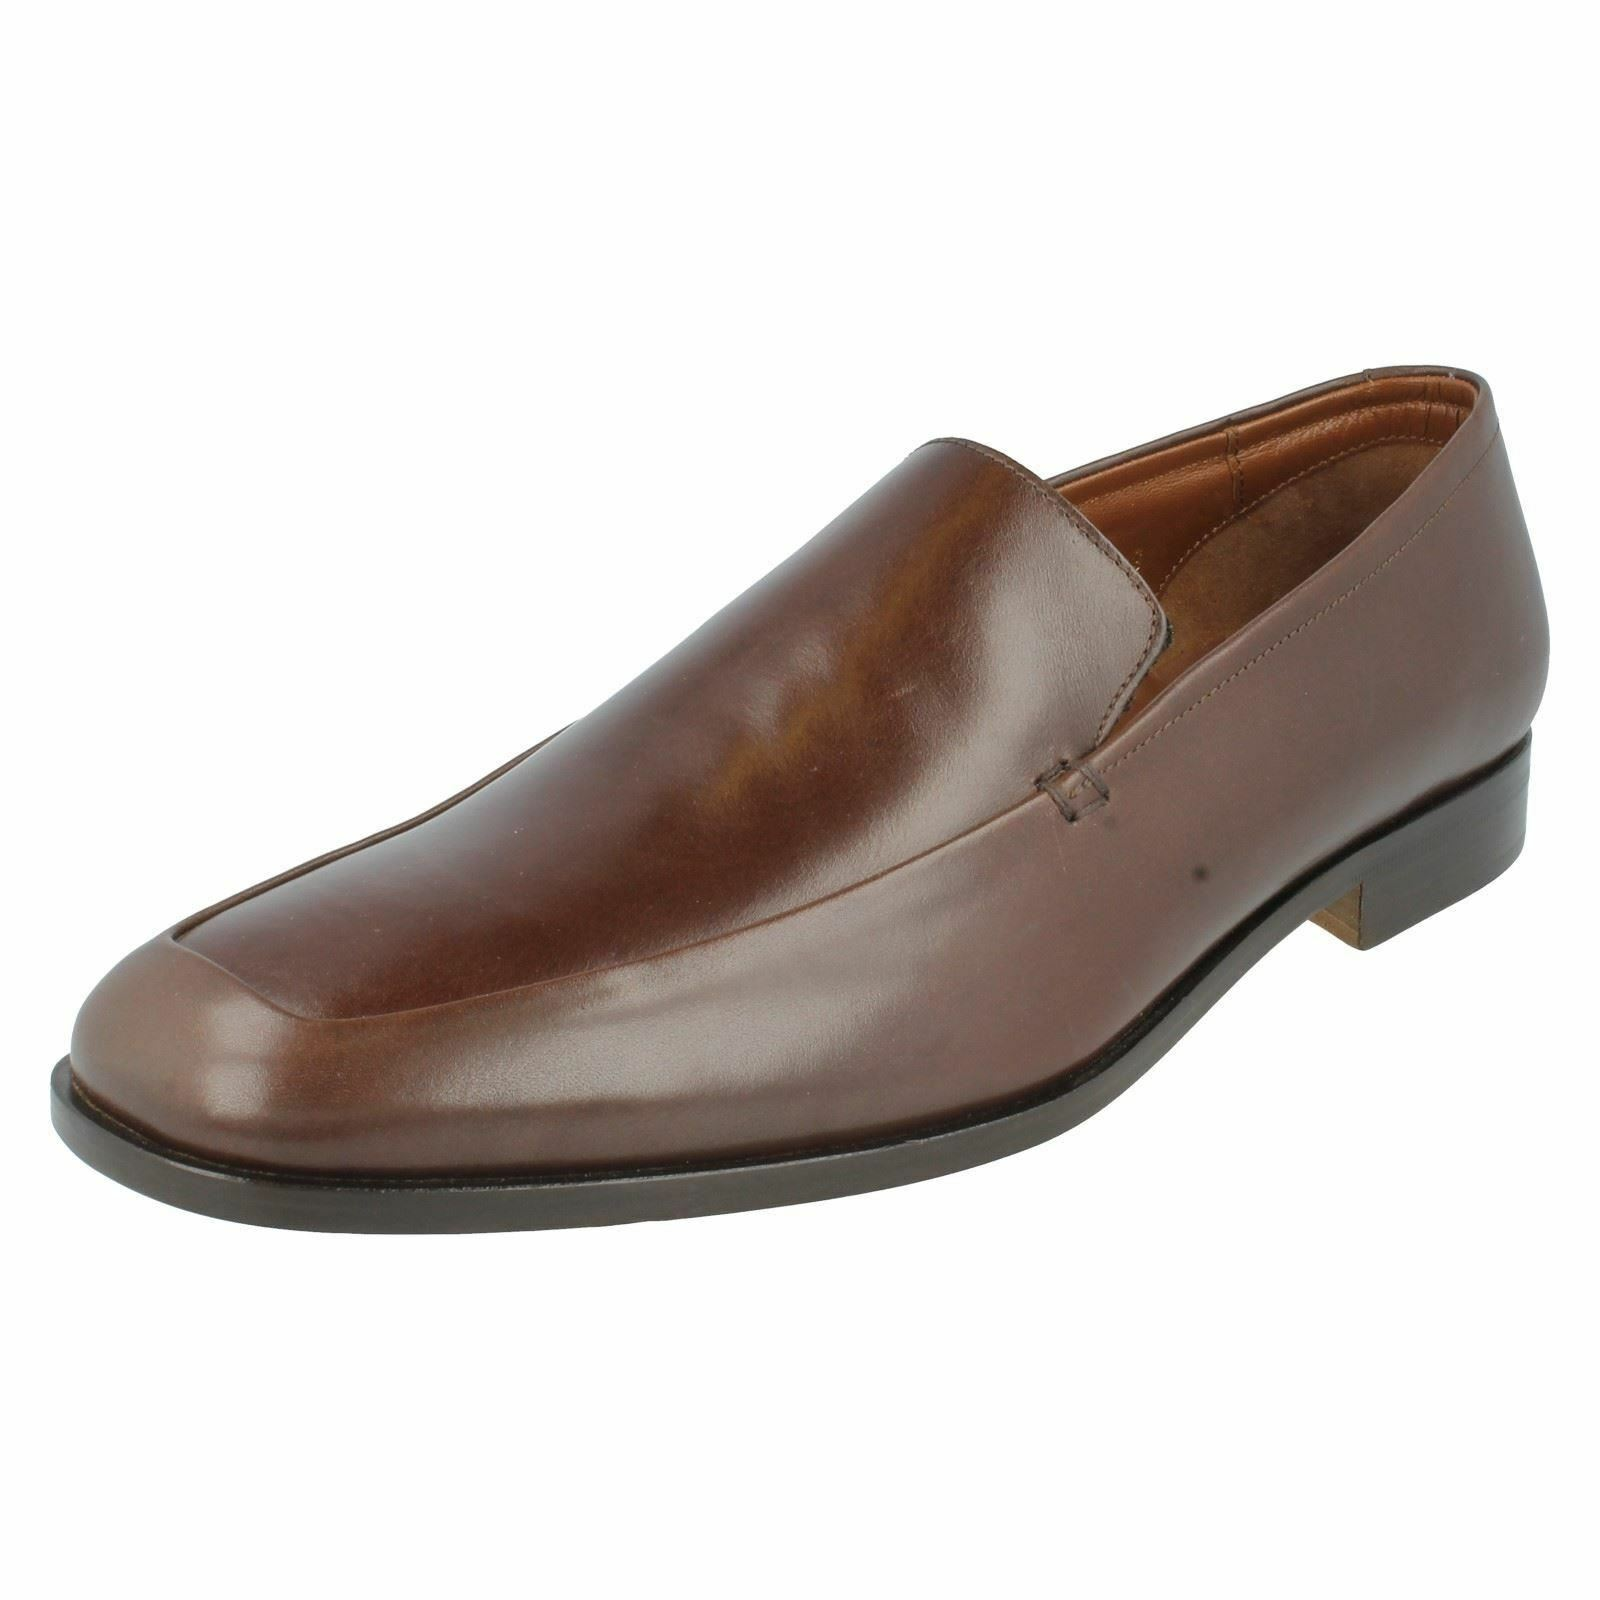 Grenson 'Nice' Gents Brown Apron Stitched Toe Leather Slip On shoes G Fit